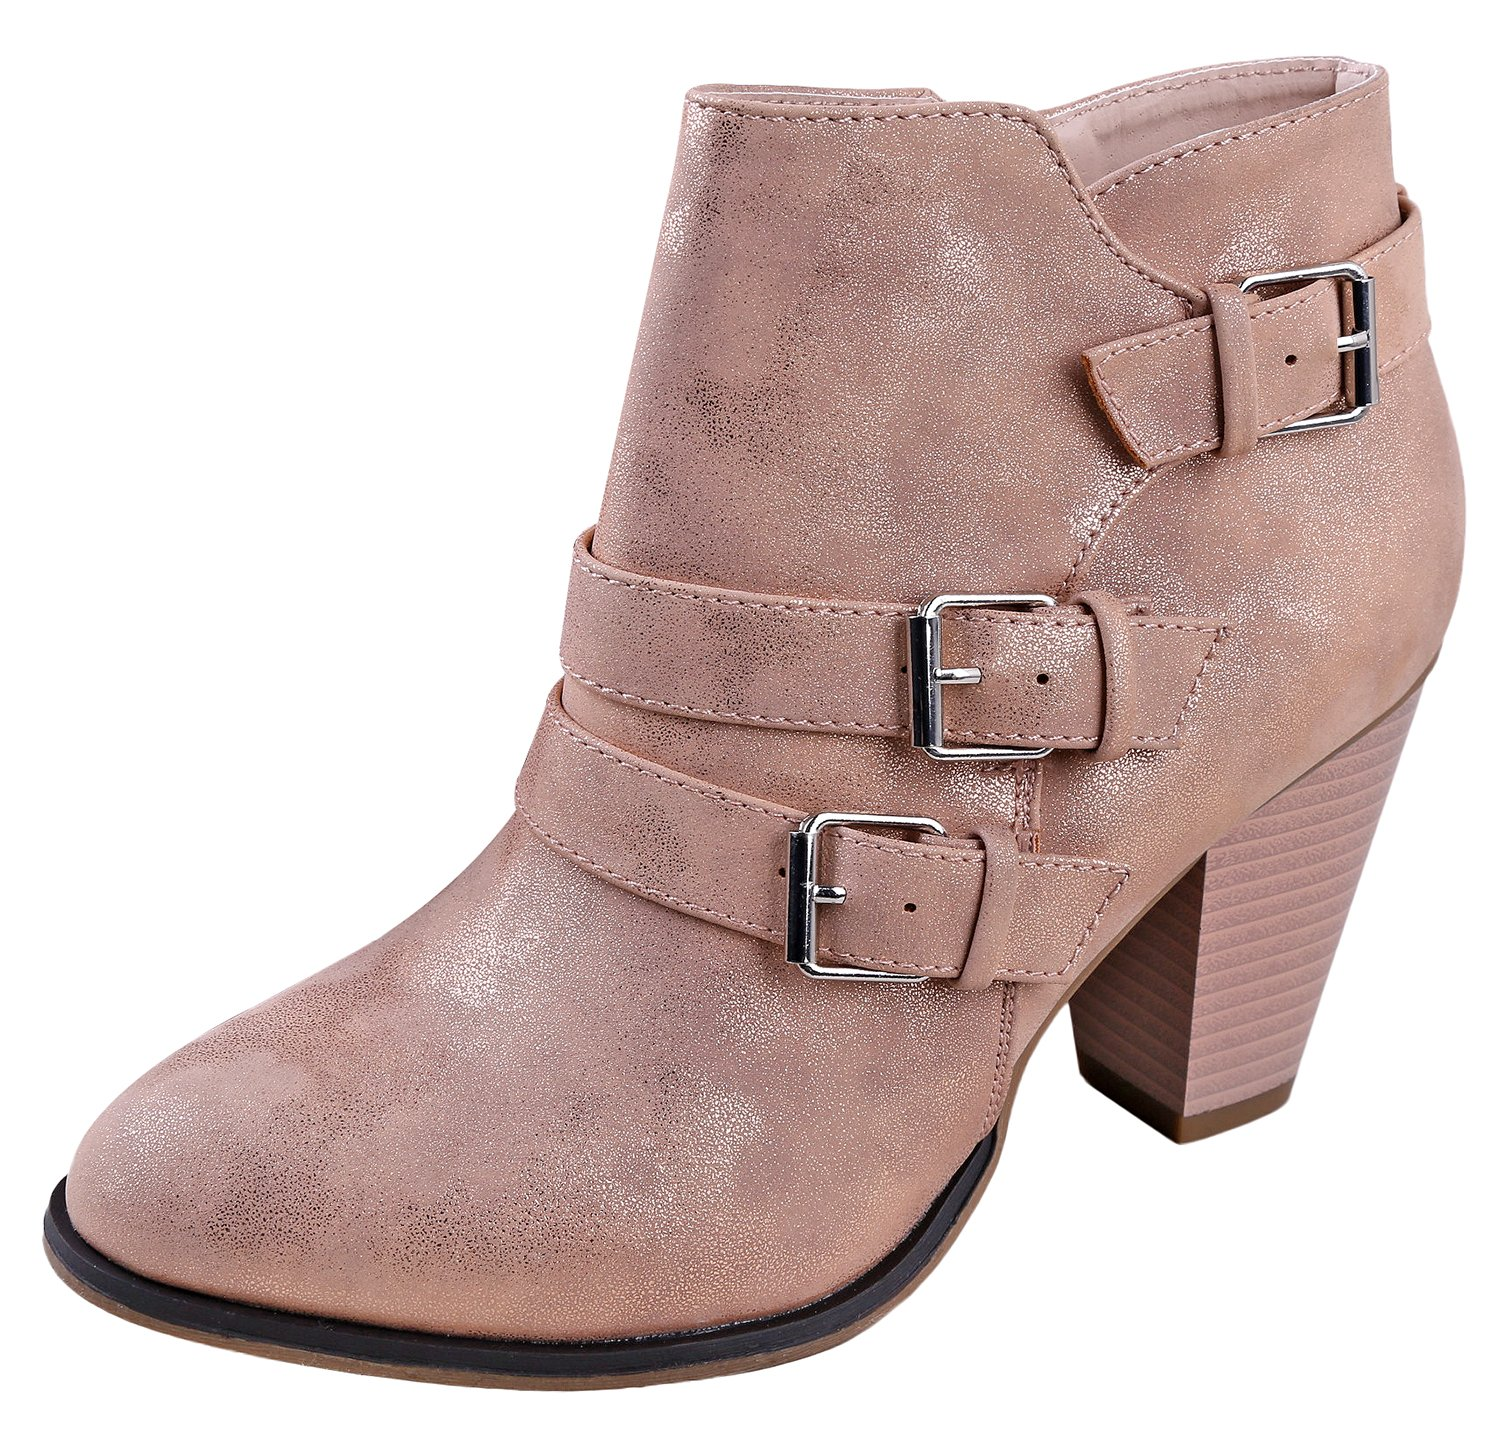 Titan Mall Forever Women's Buckle Strap Block Heel Ankle Booties Rose Gold…